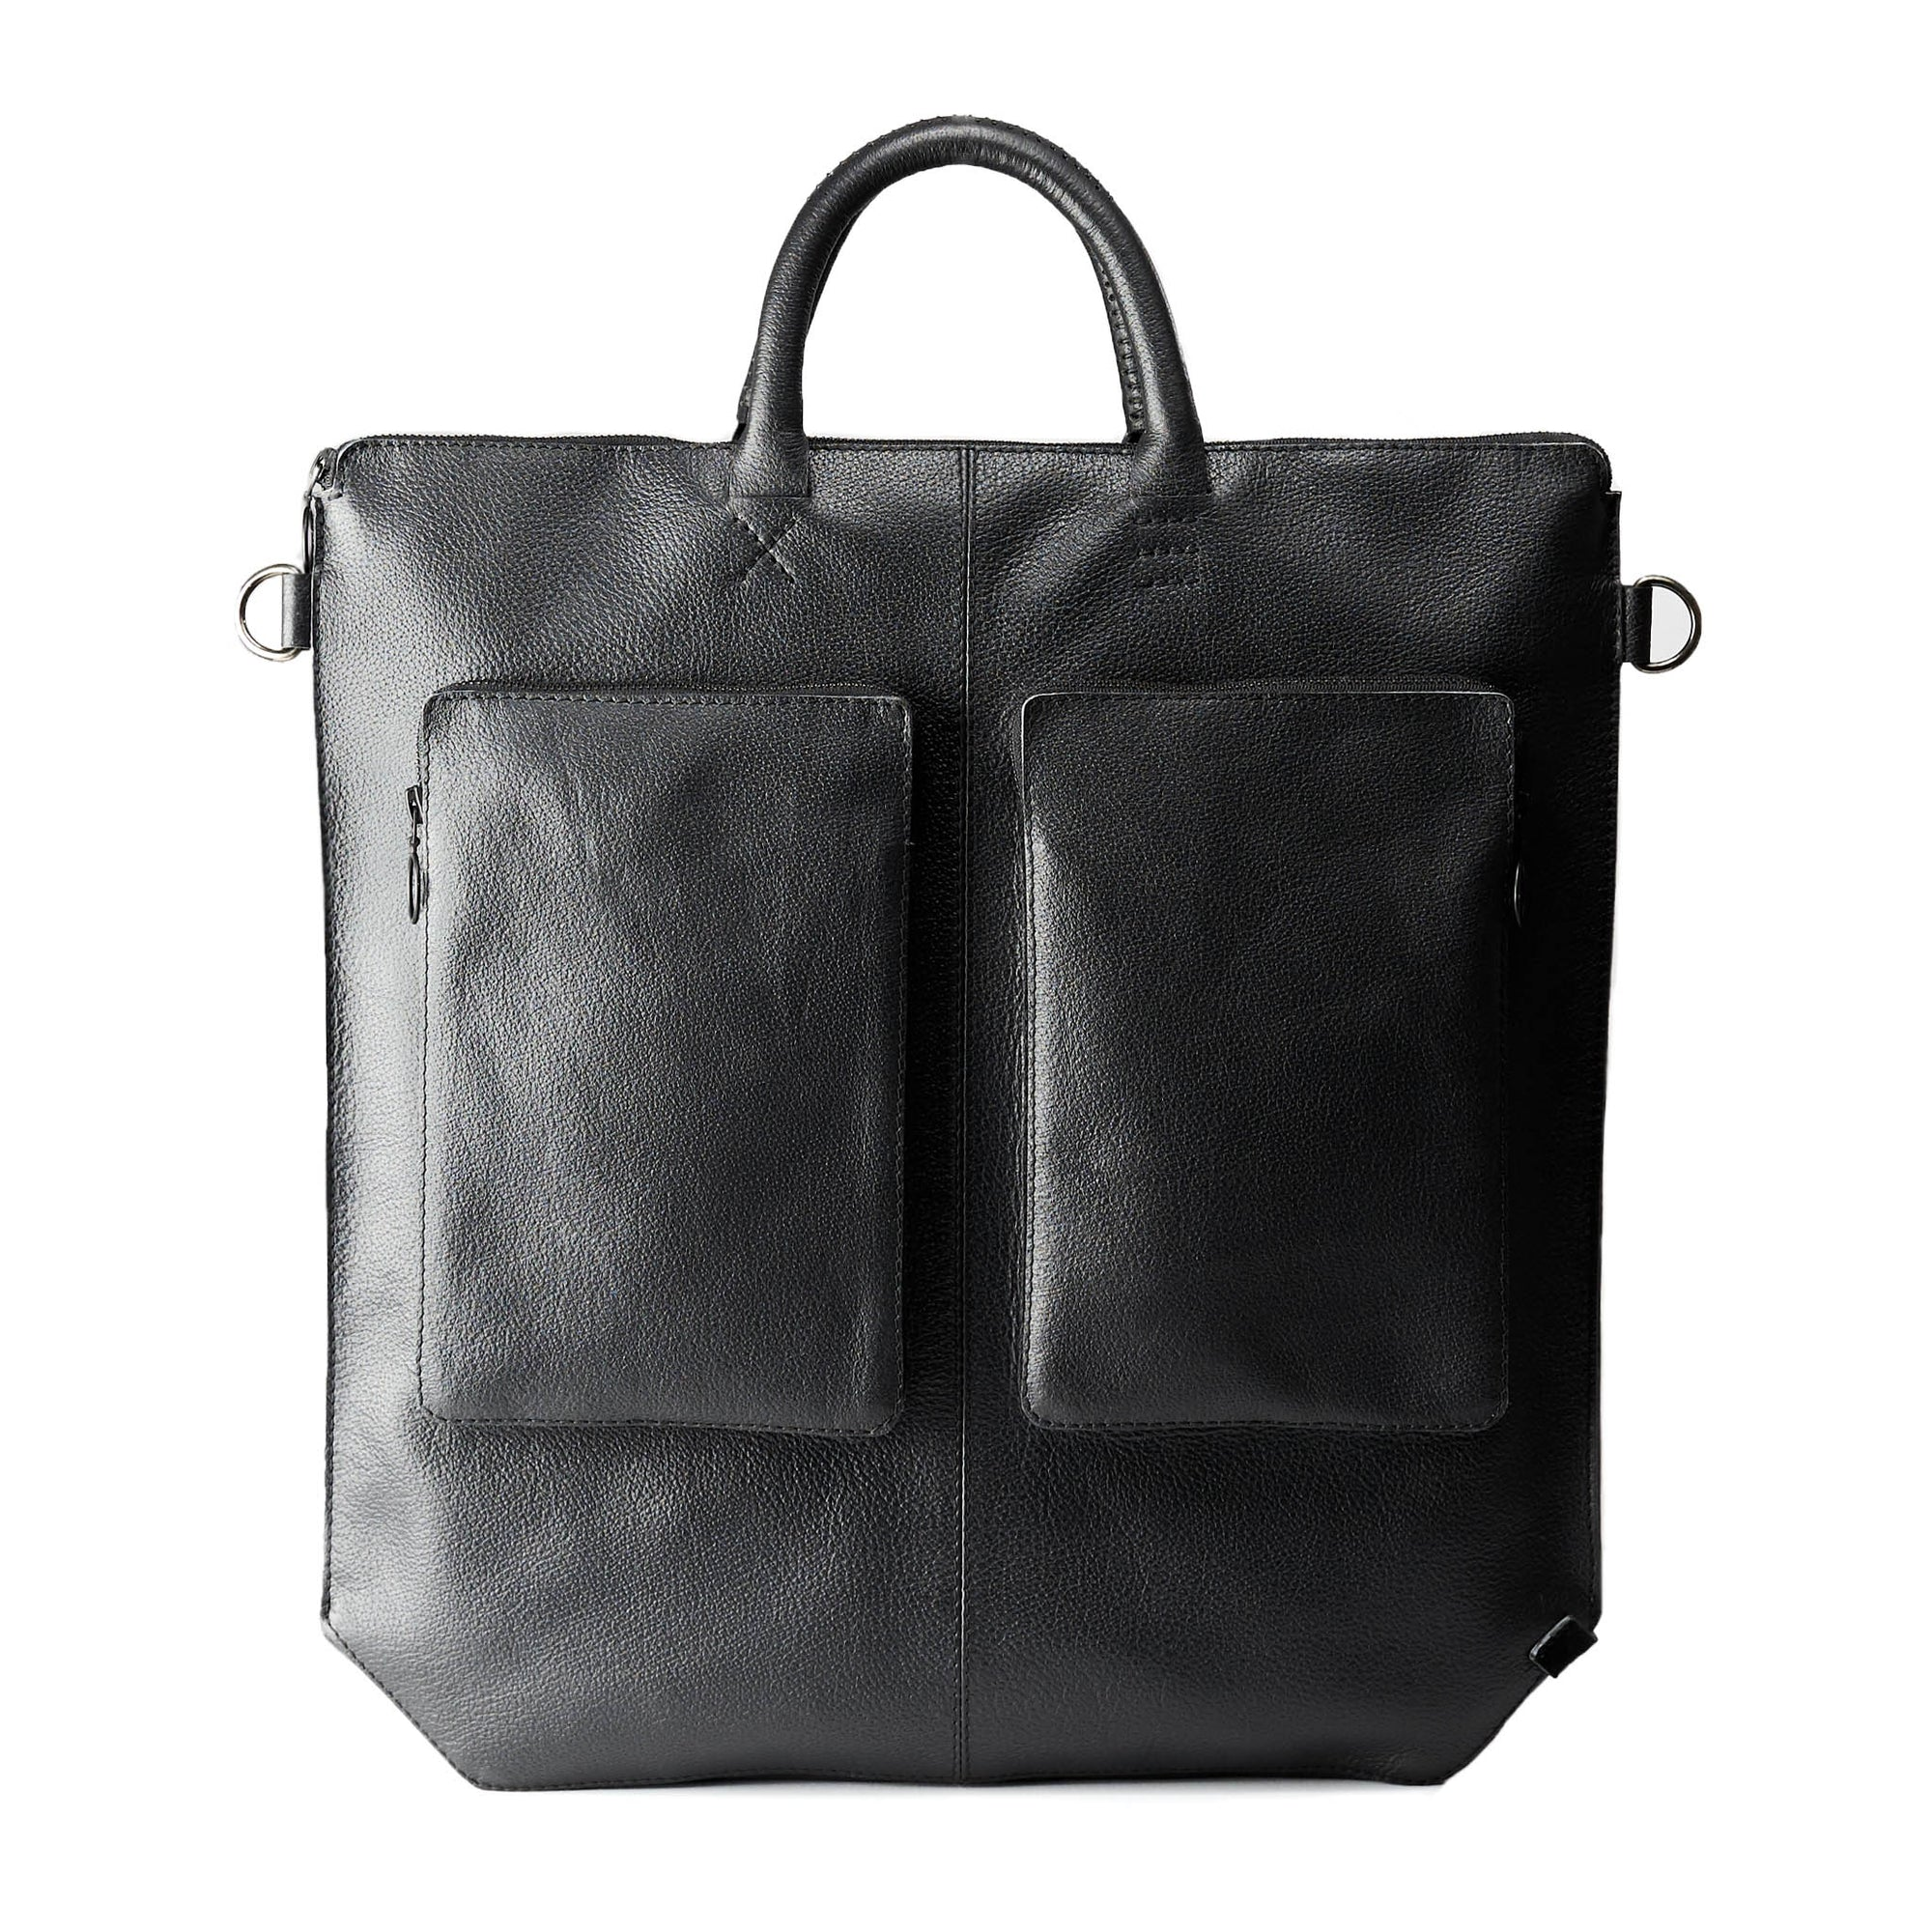 Front side in leather. Black tote zipper bag by Capra Leather. Handmade men work bag.